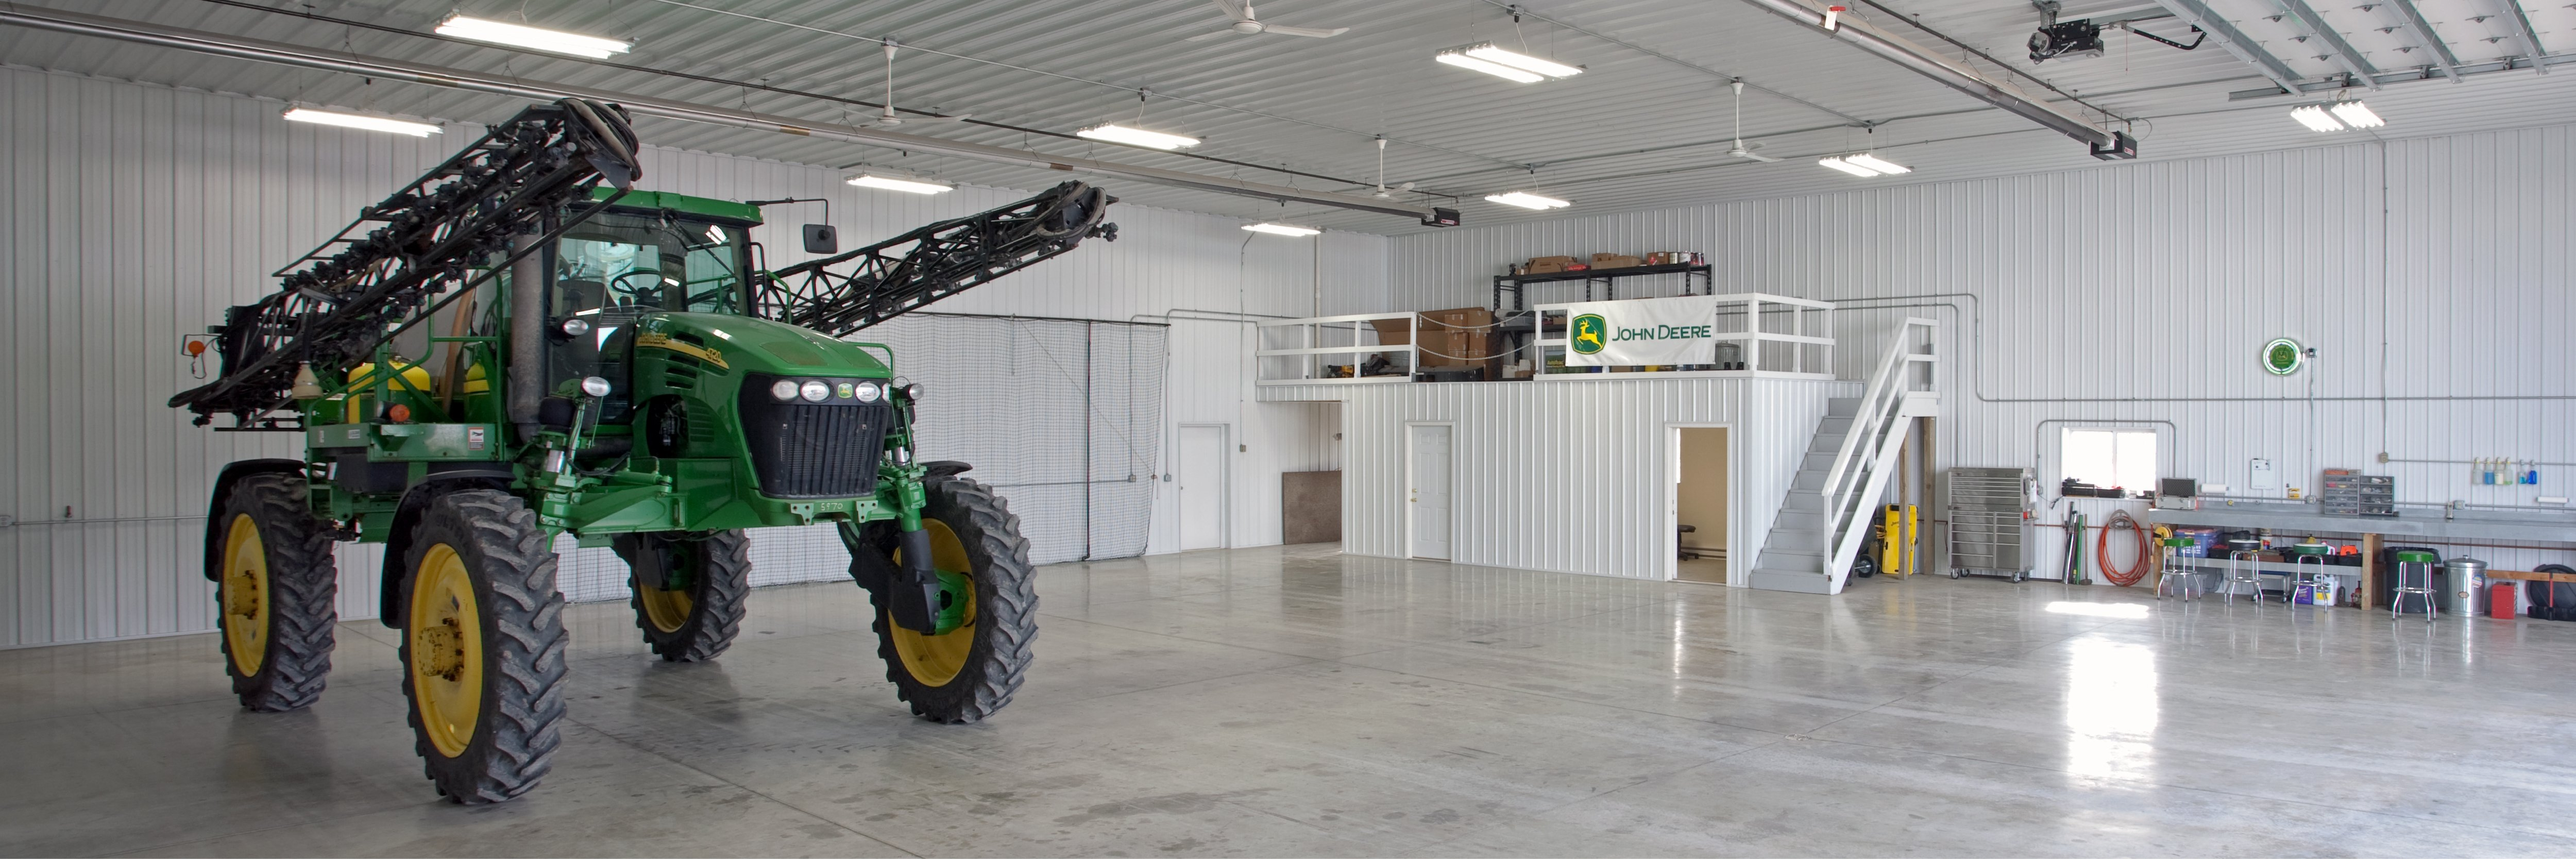 Pole Barn Flooring Options: Which One is Right for You?